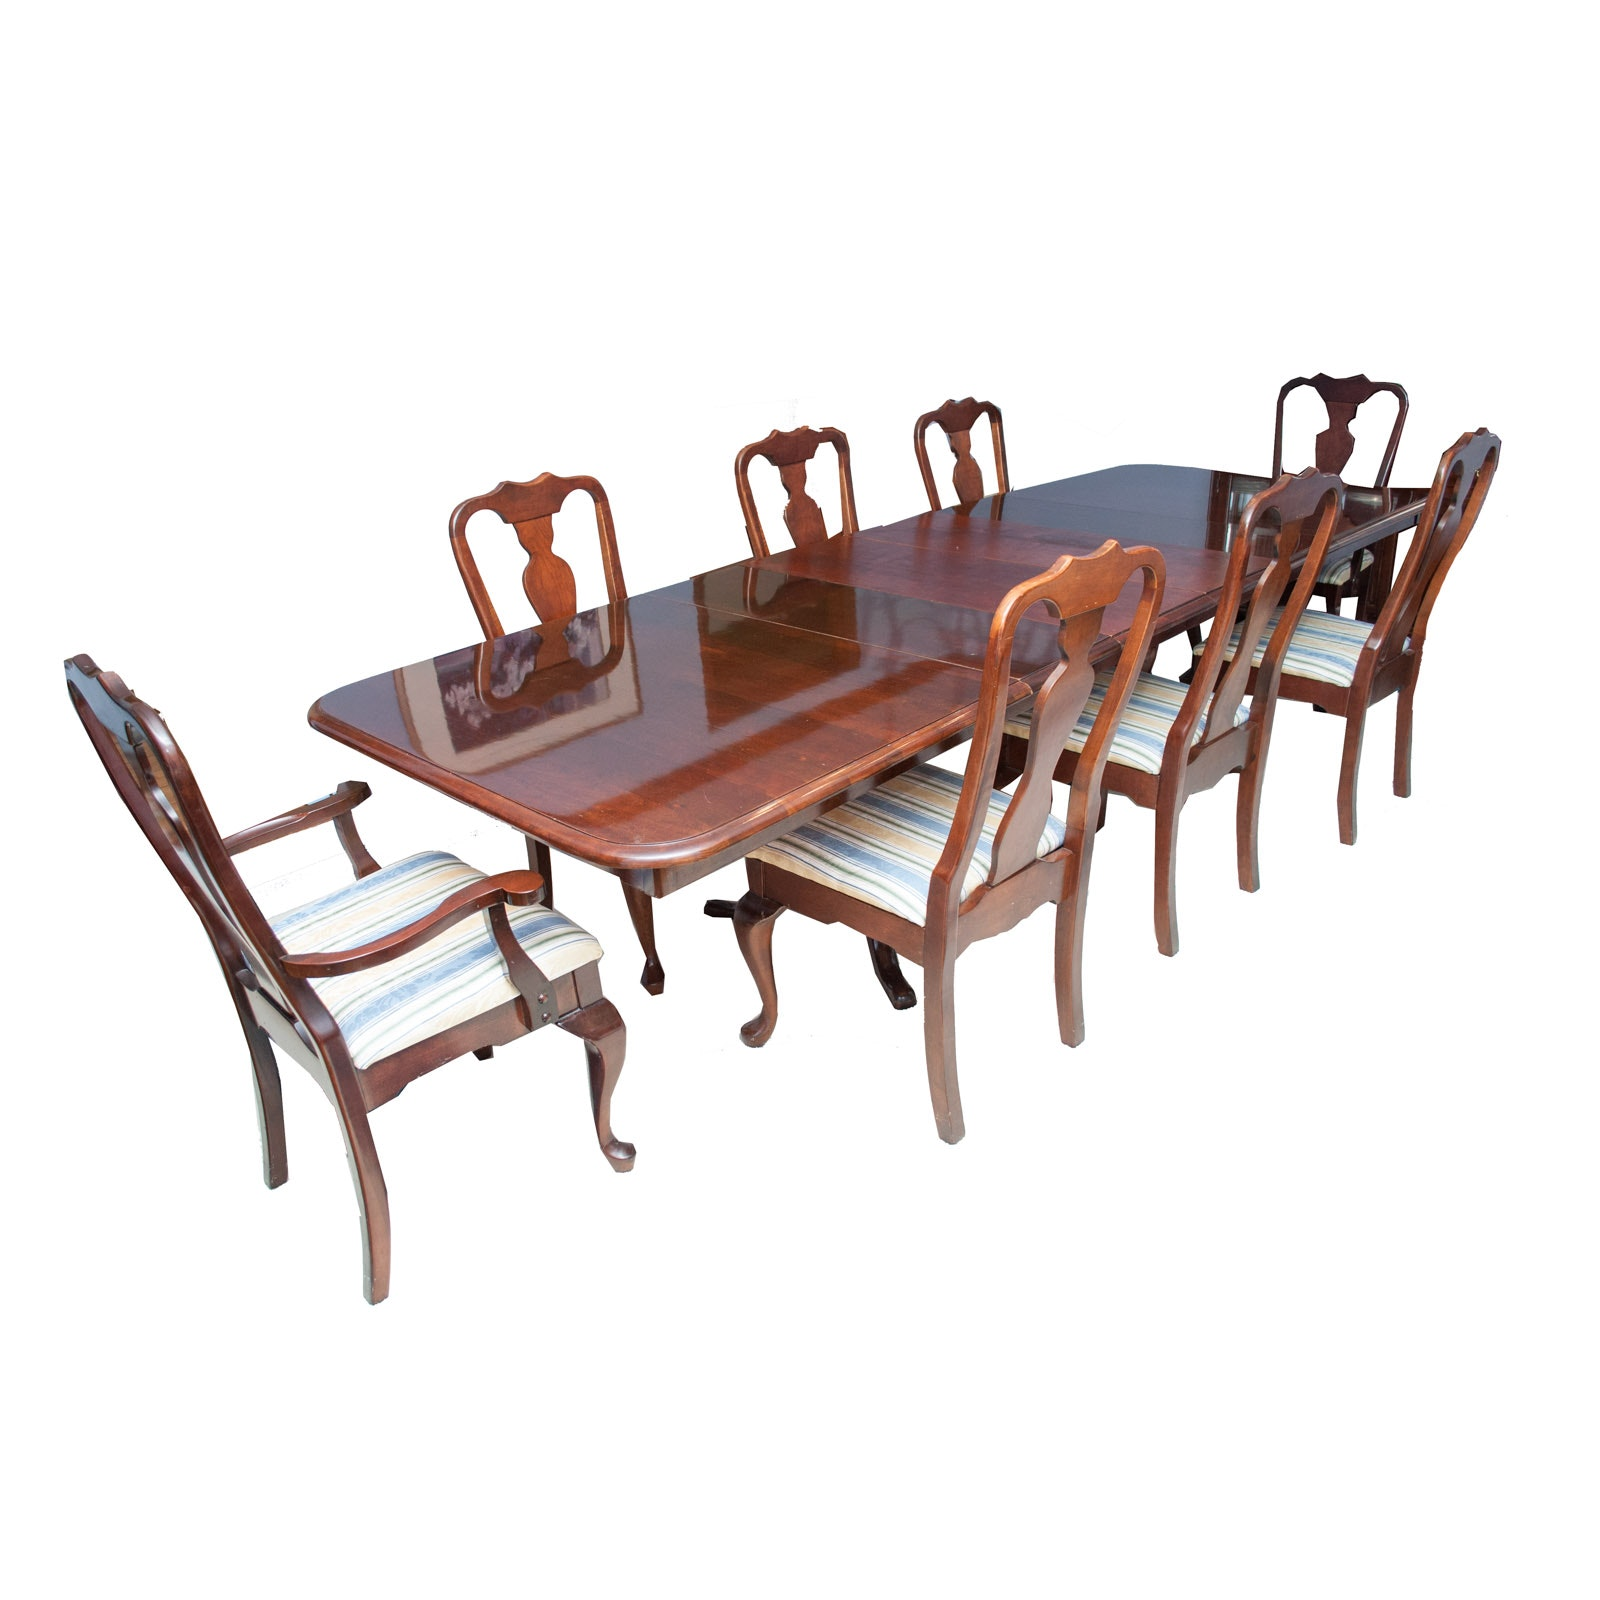 Kincaid Cherry Leaf Dining Table and Chairs